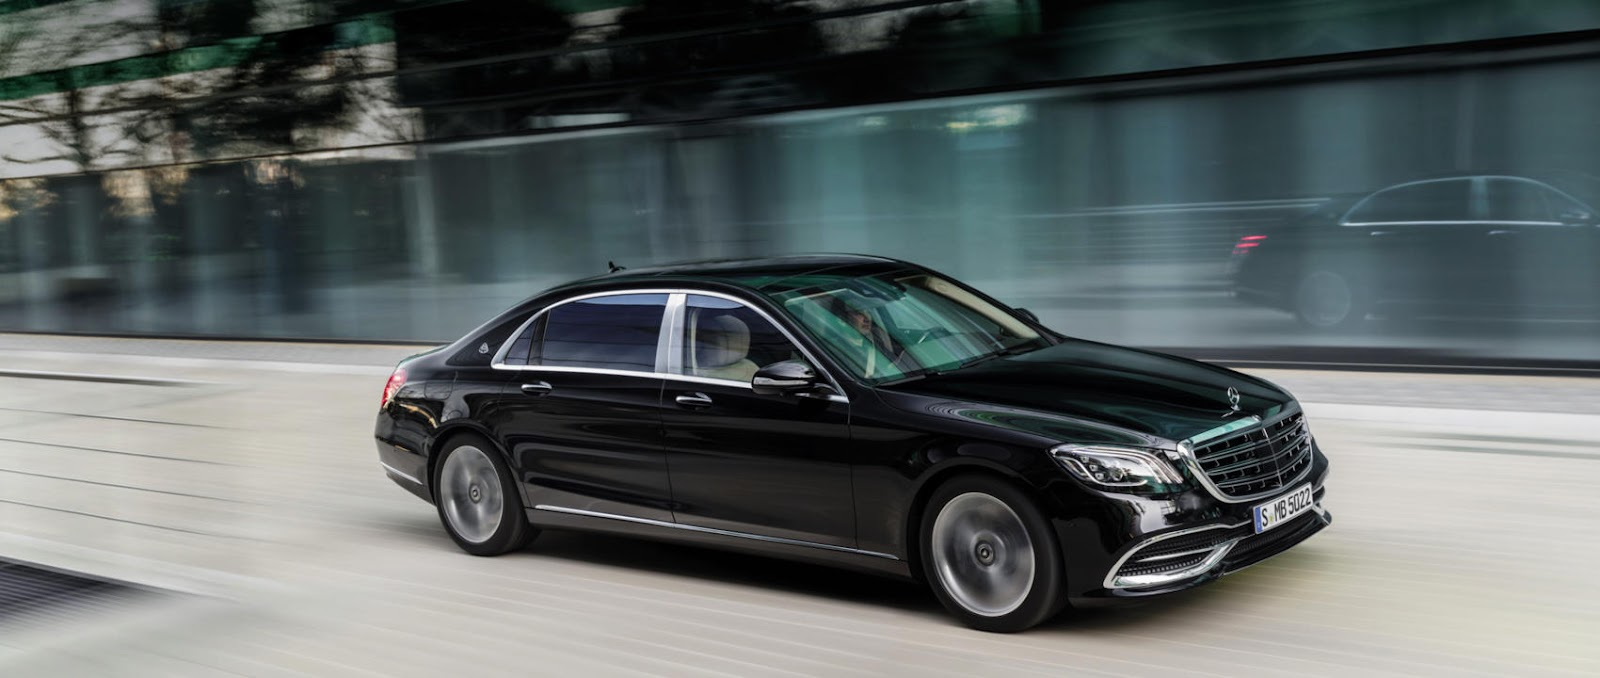 000-mercedes-benz-vehicles-maybach-s-class-560-4matic-x222-3400x1440px-2-1700x720.jpg